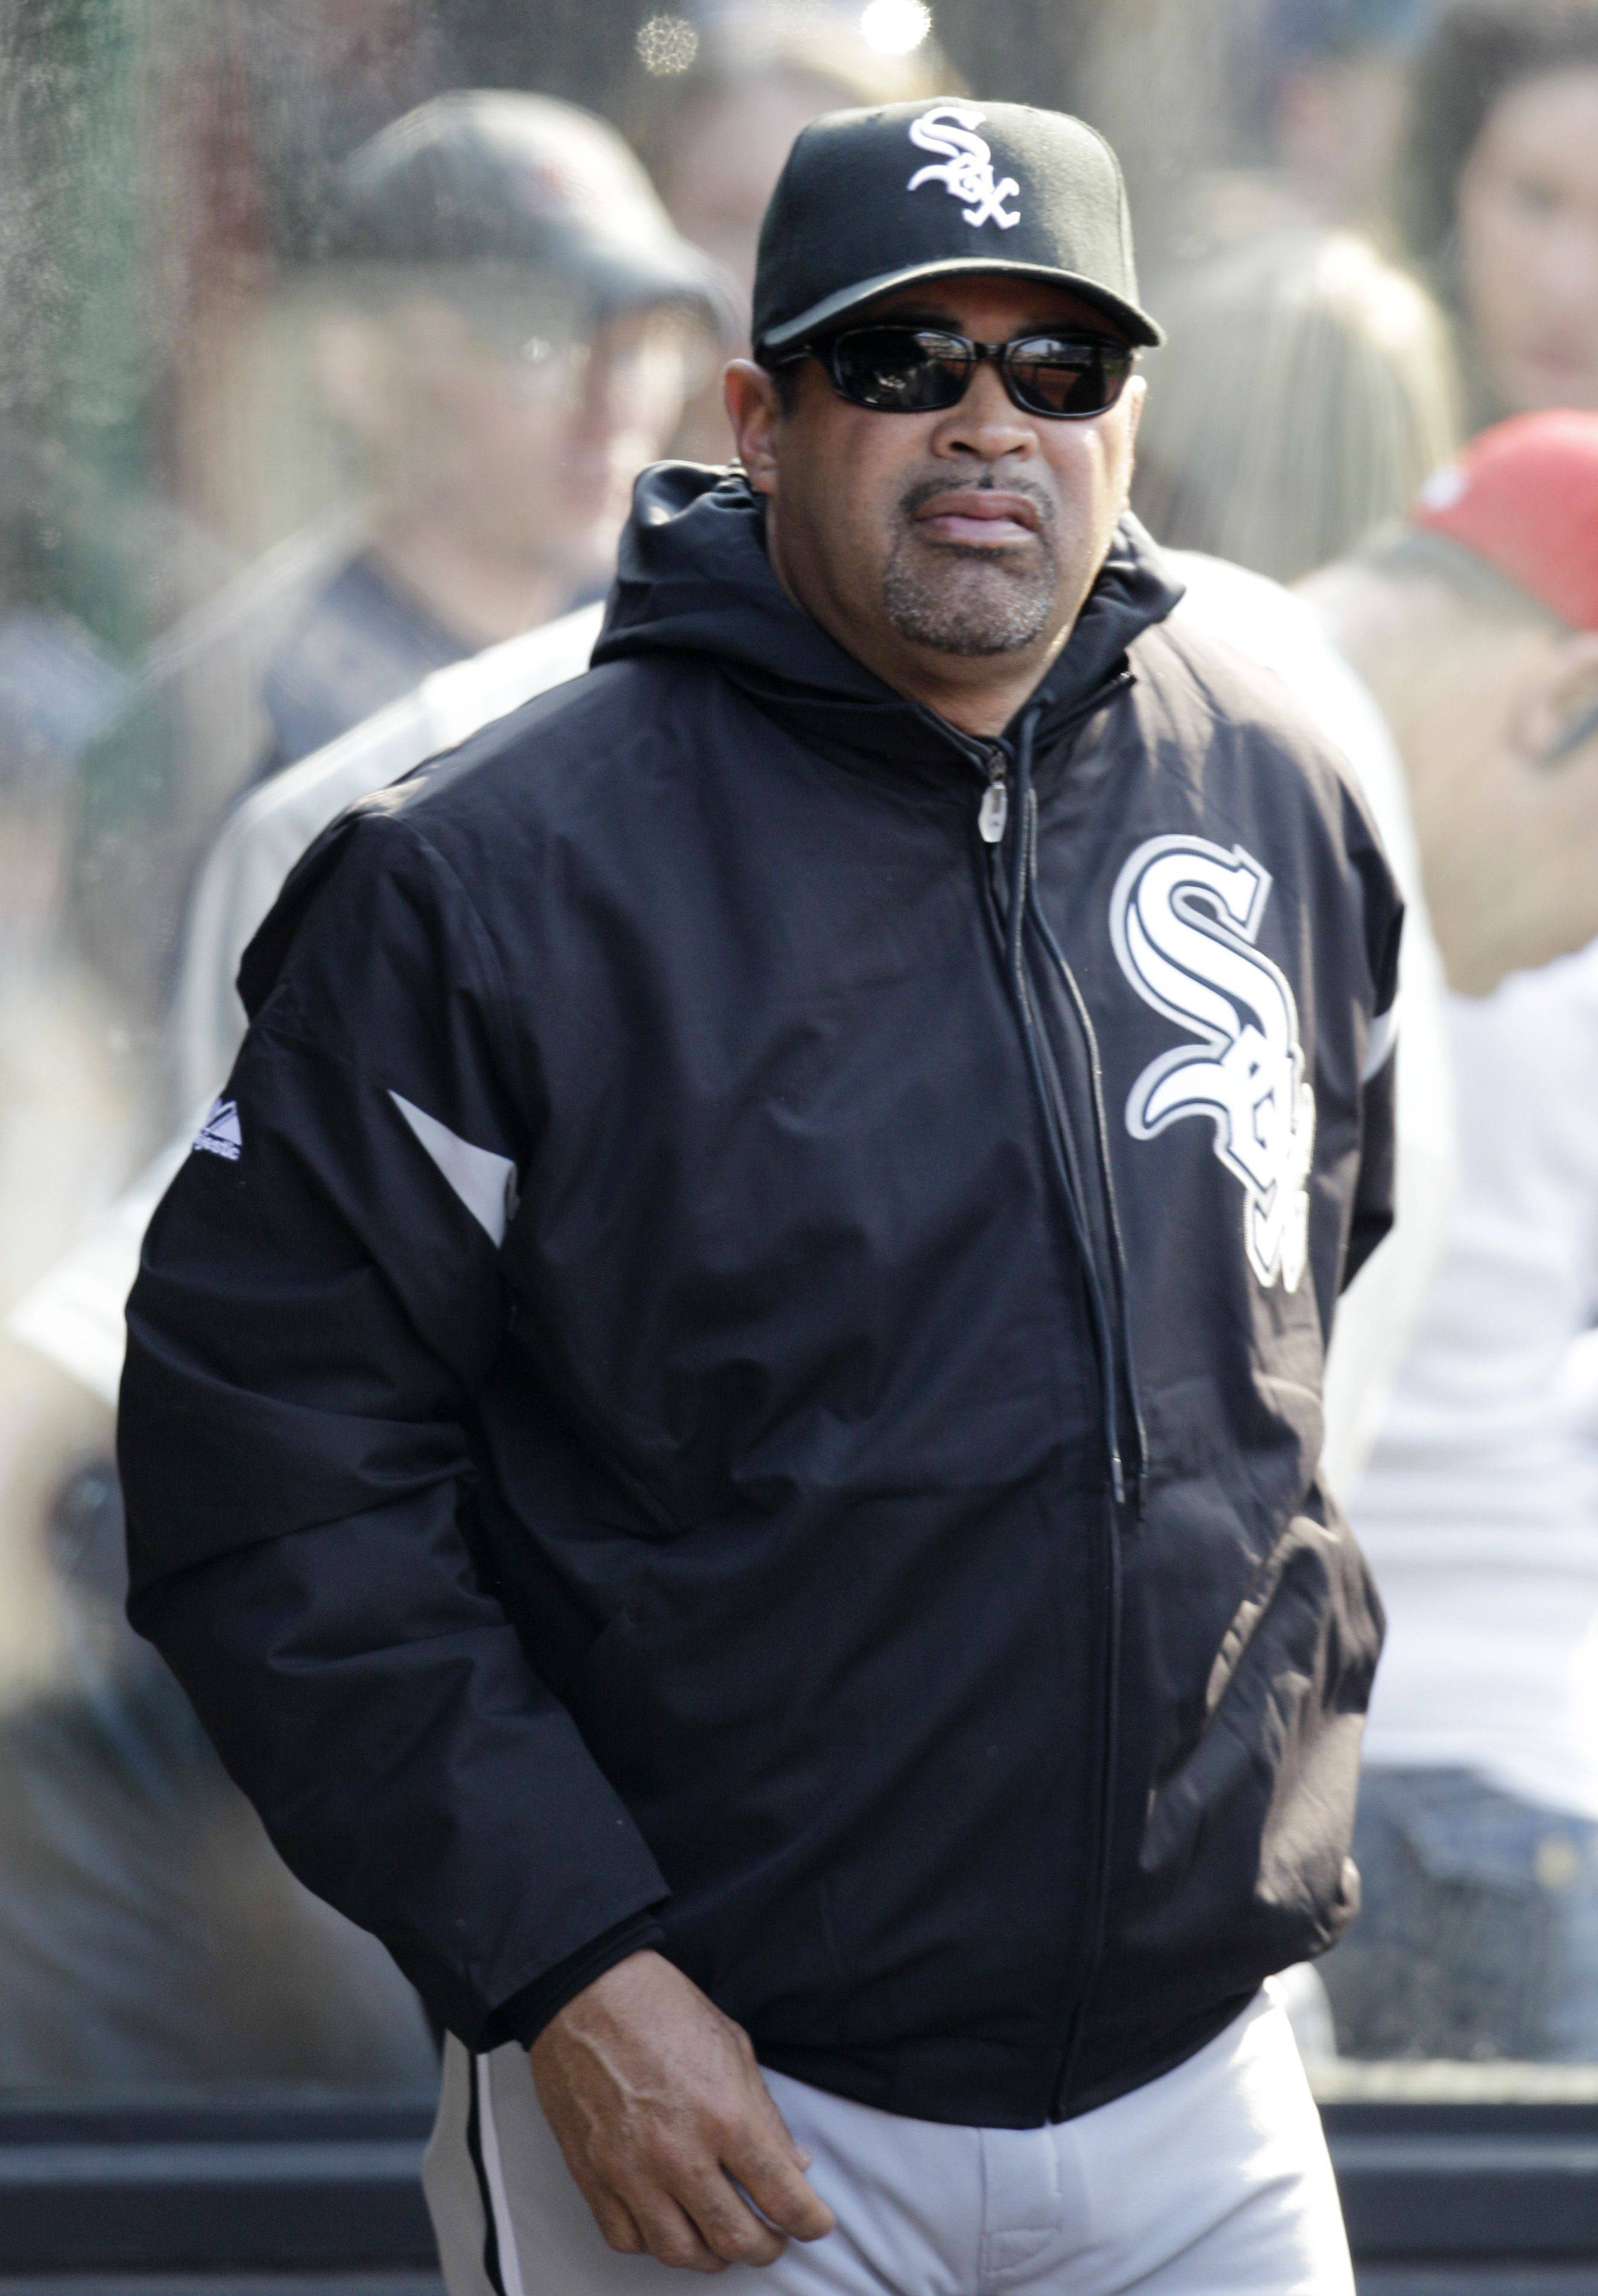 Chicago White Sox manager Ozzie Guillen watches from the dugout during the sixth inning in an opening day baseball game against the Cleveland Indians, Friday, April 1, 2011, in Cleveland.